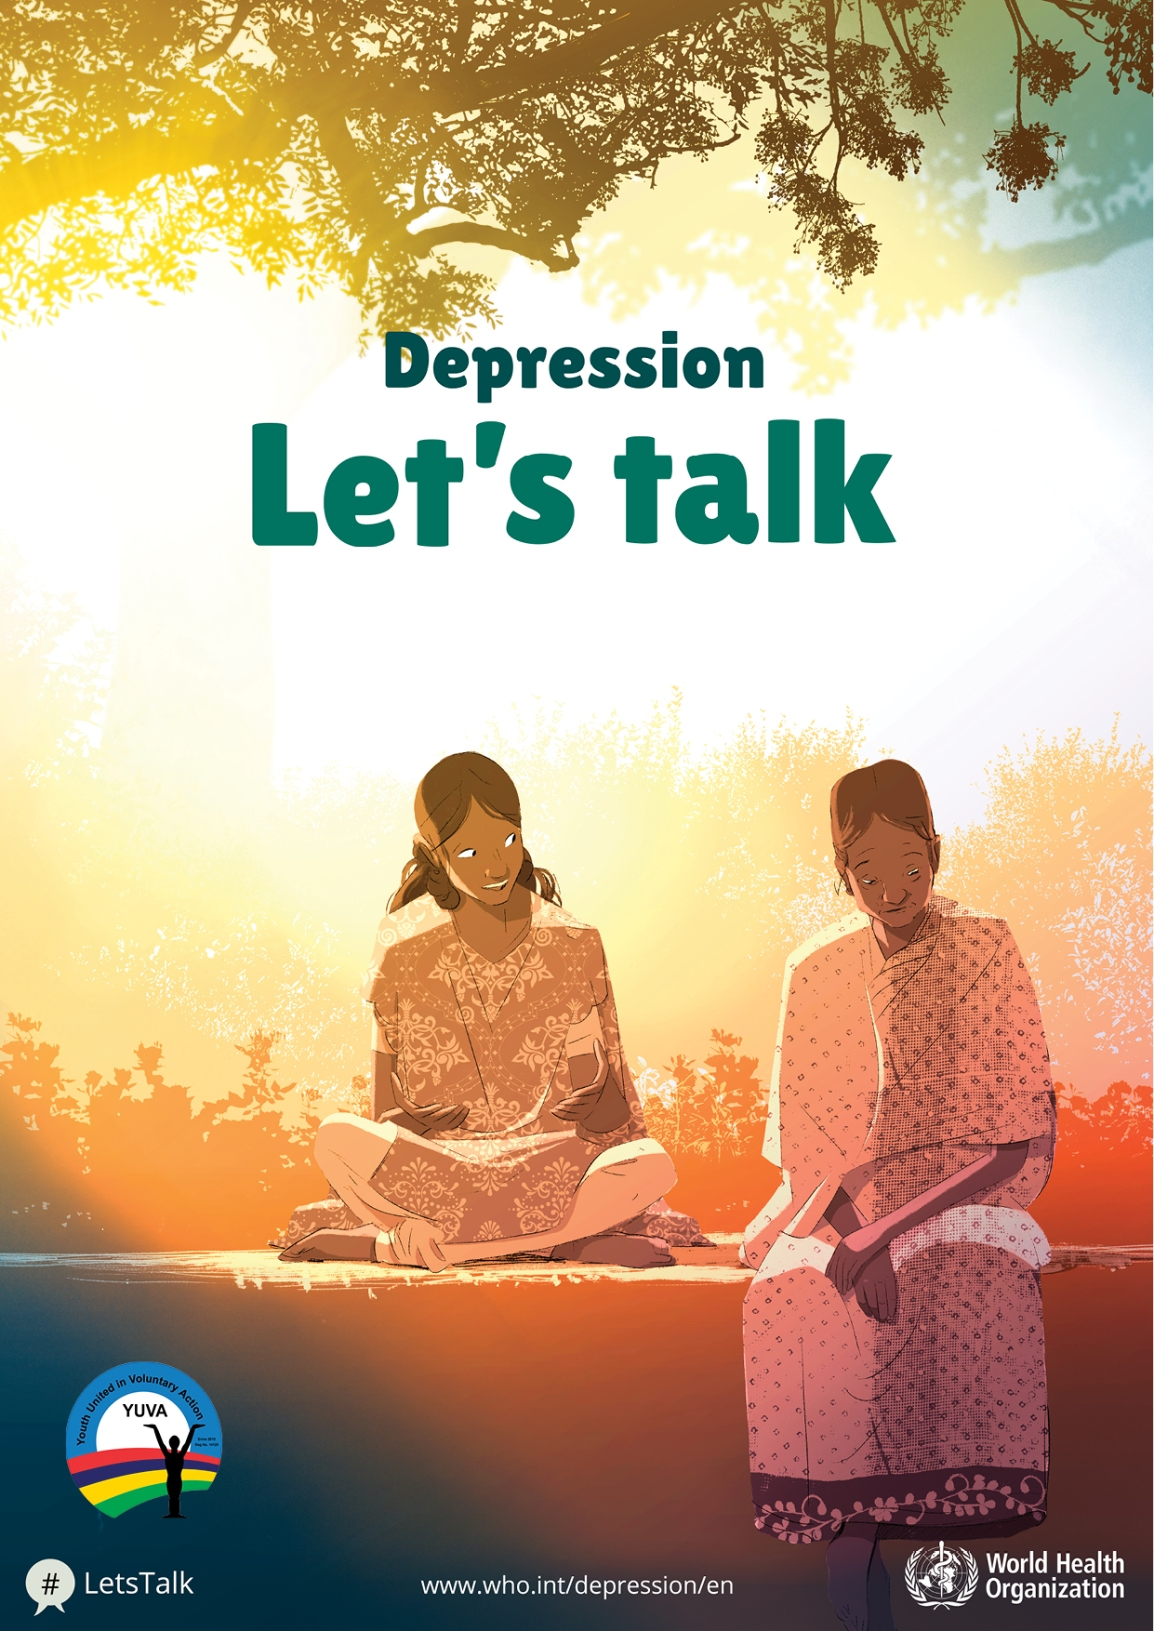 7 April, World Health Day: Let's talk aboutDepression